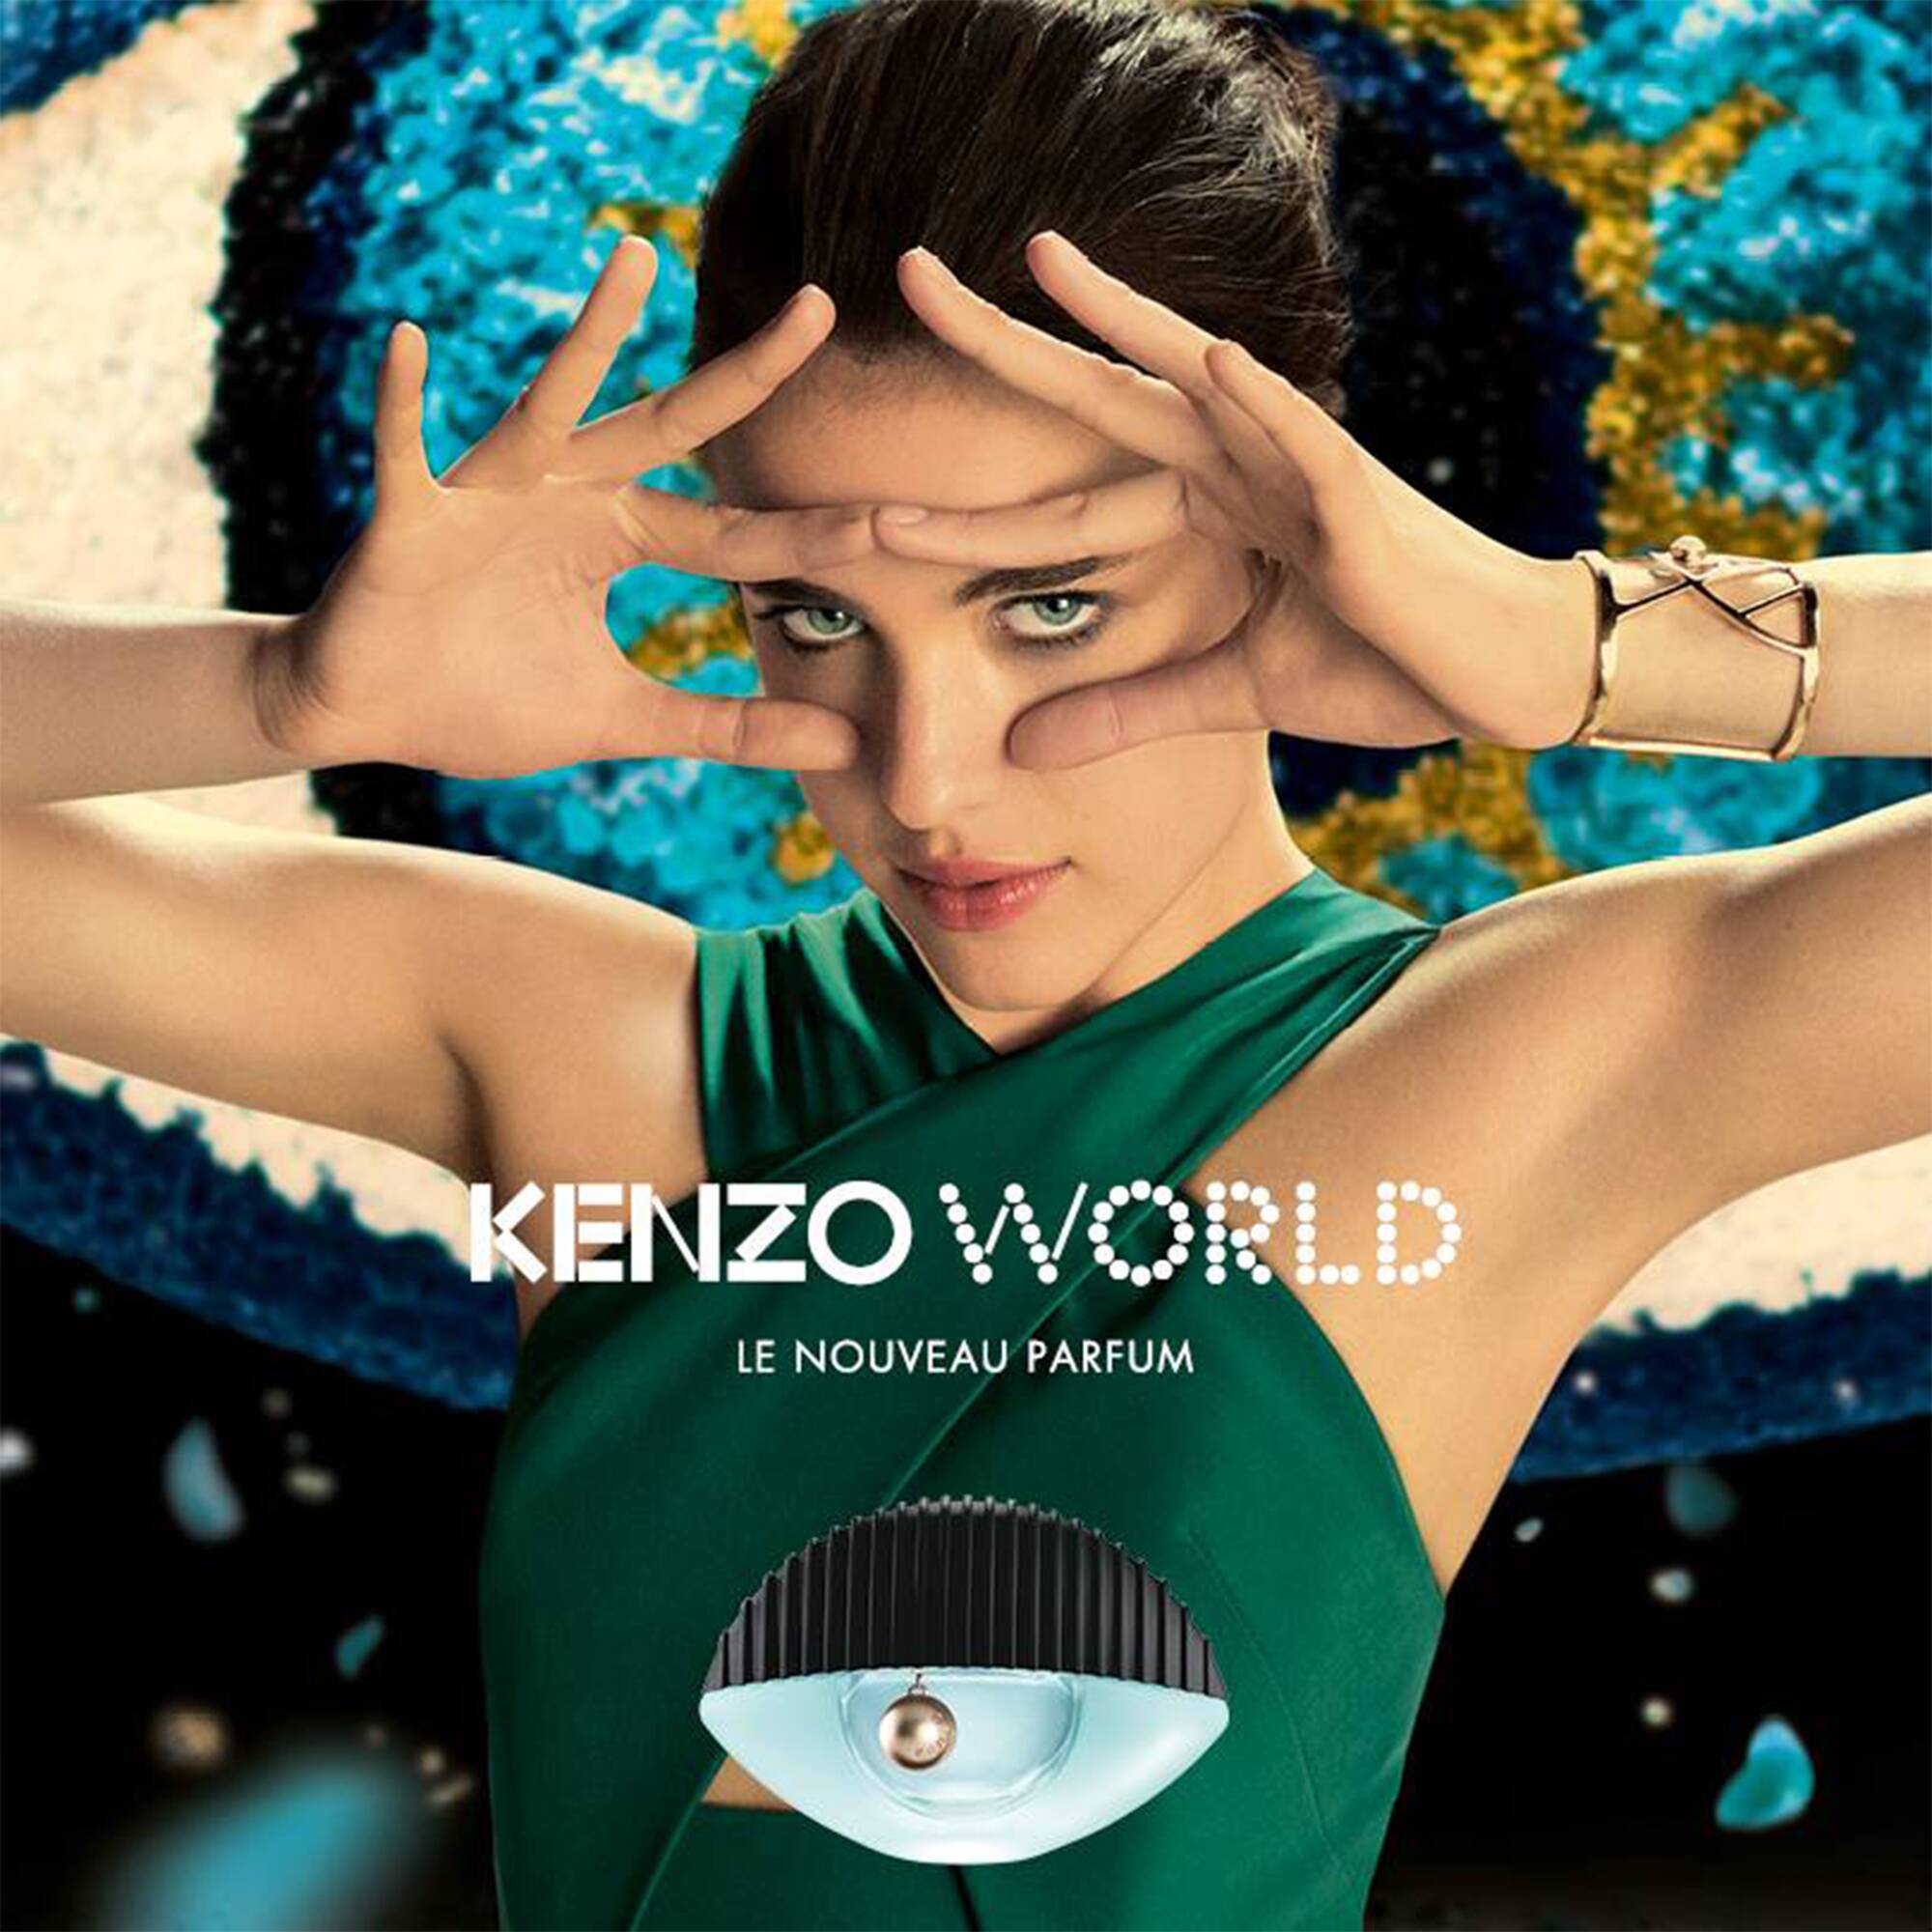 kenzo unveils new kenzo world fragrance lvmh. Black Bedroom Furniture Sets. Home Design Ideas